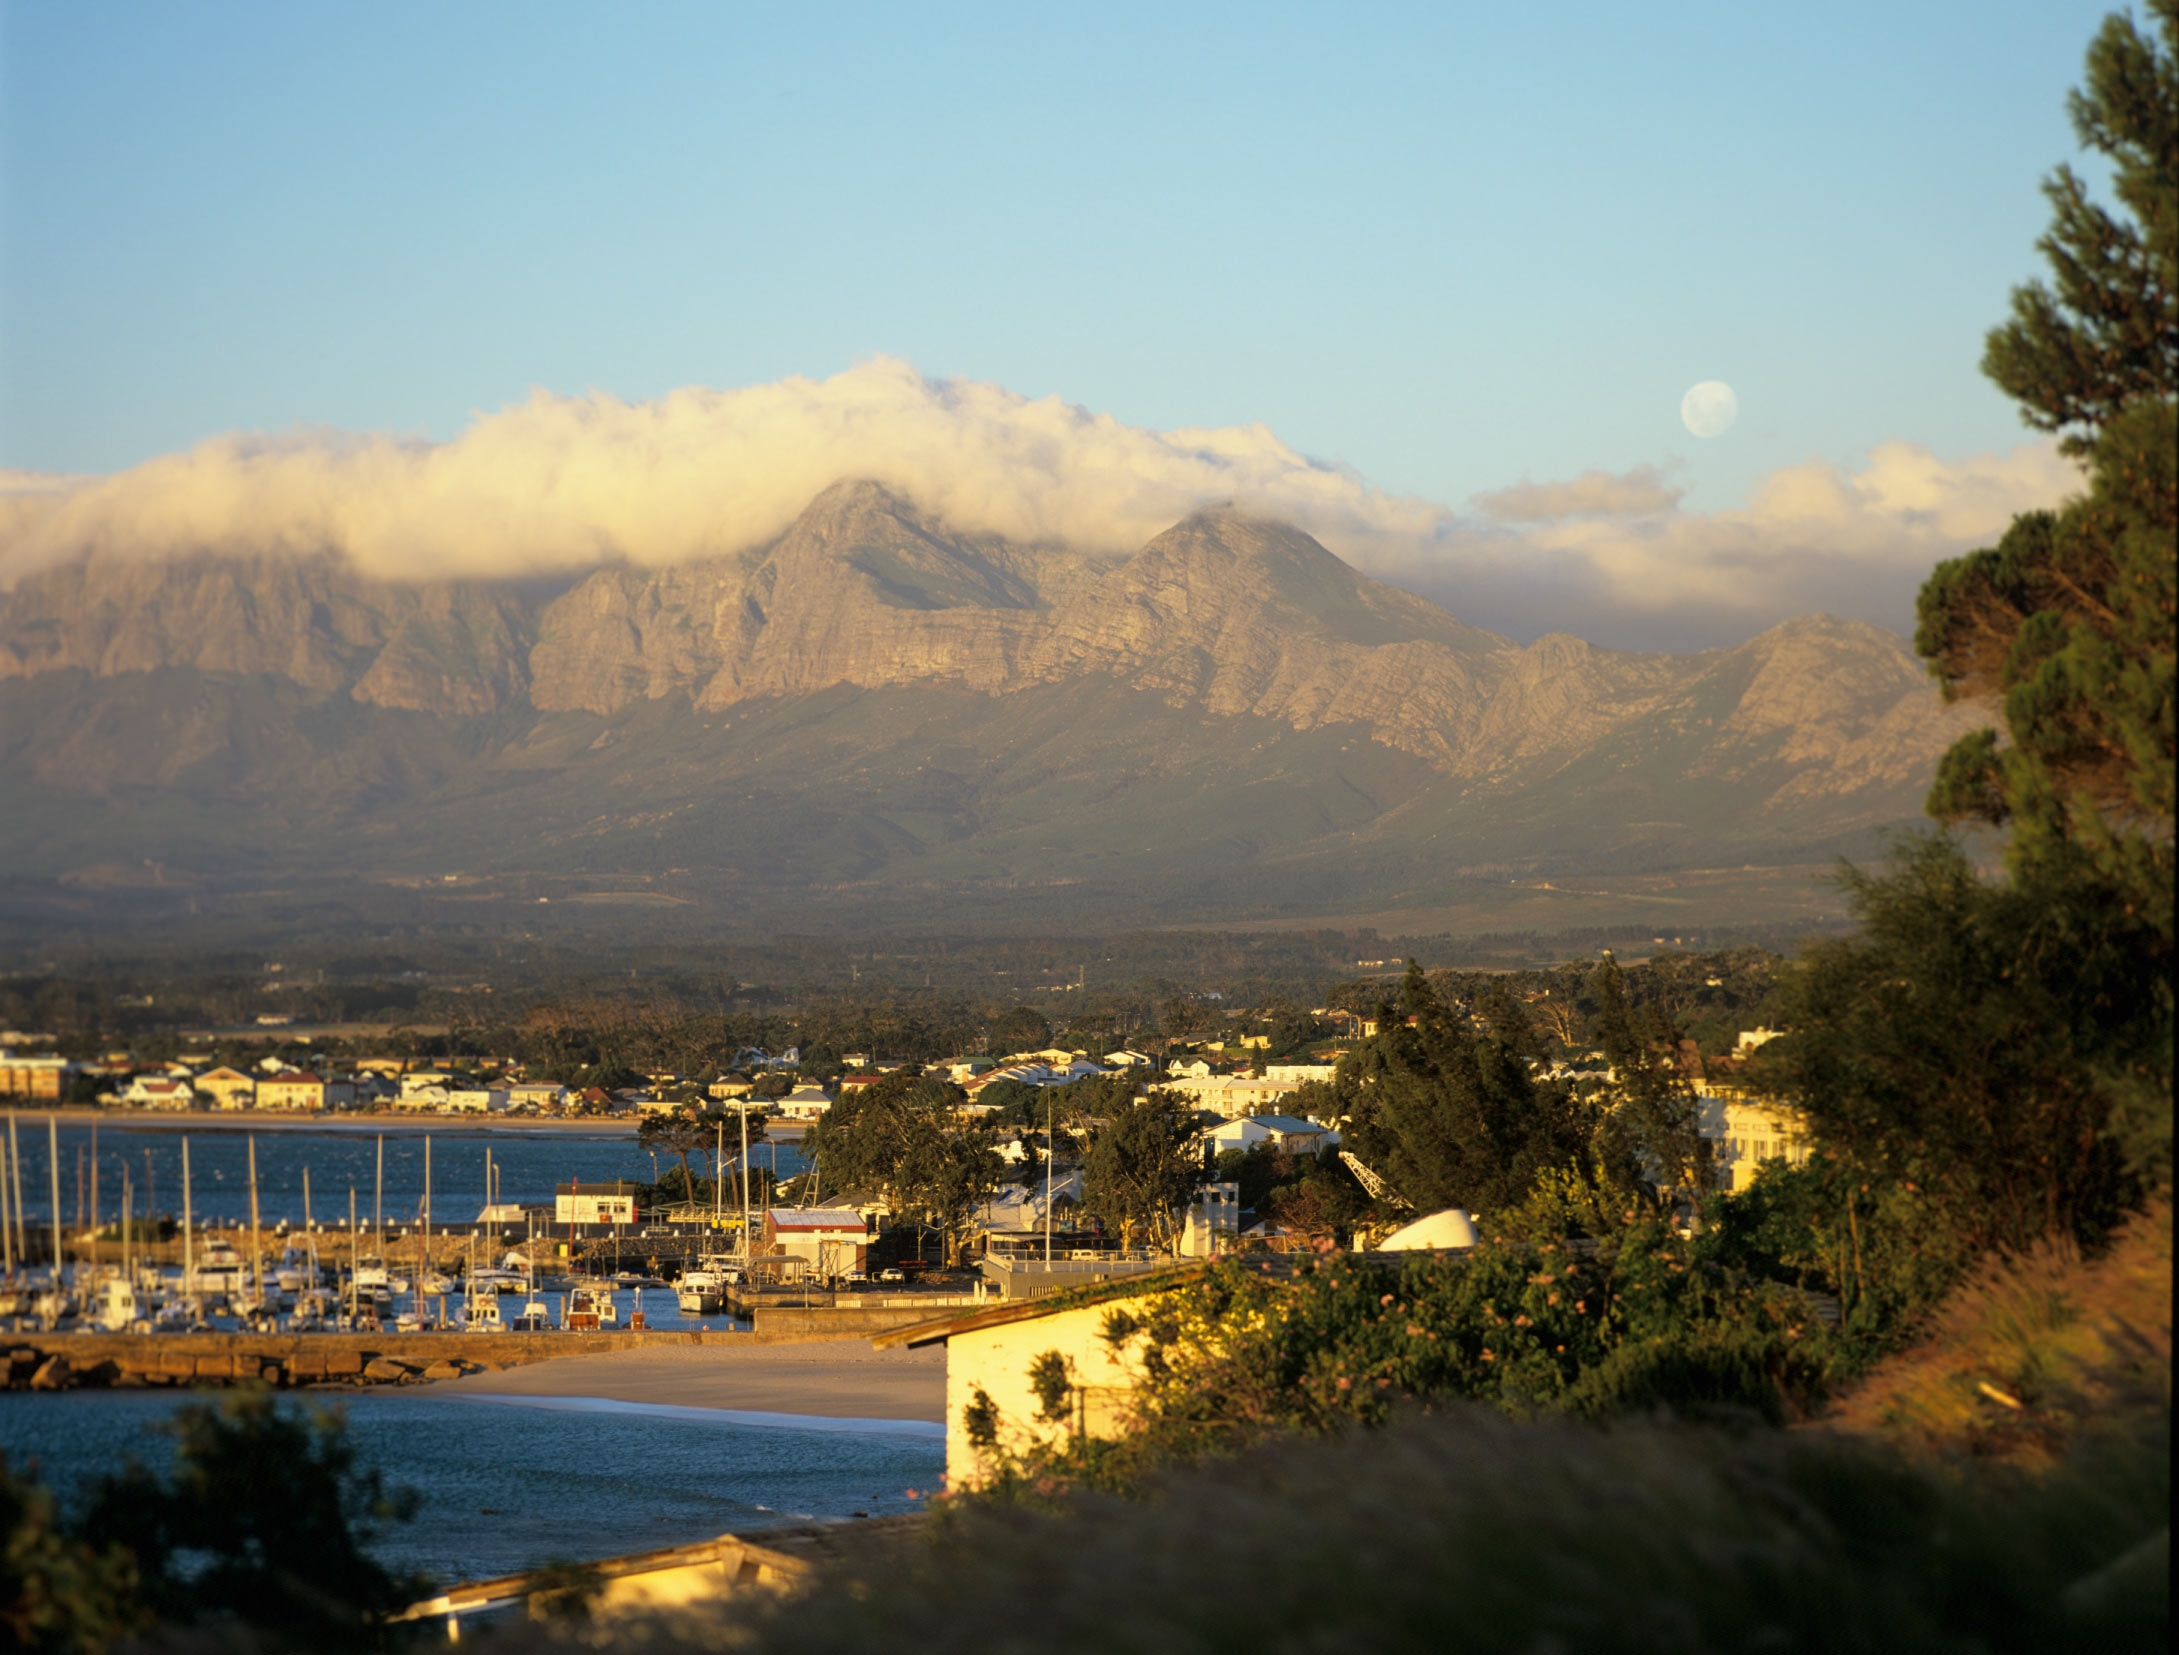 Gordon's Bay - South Africa